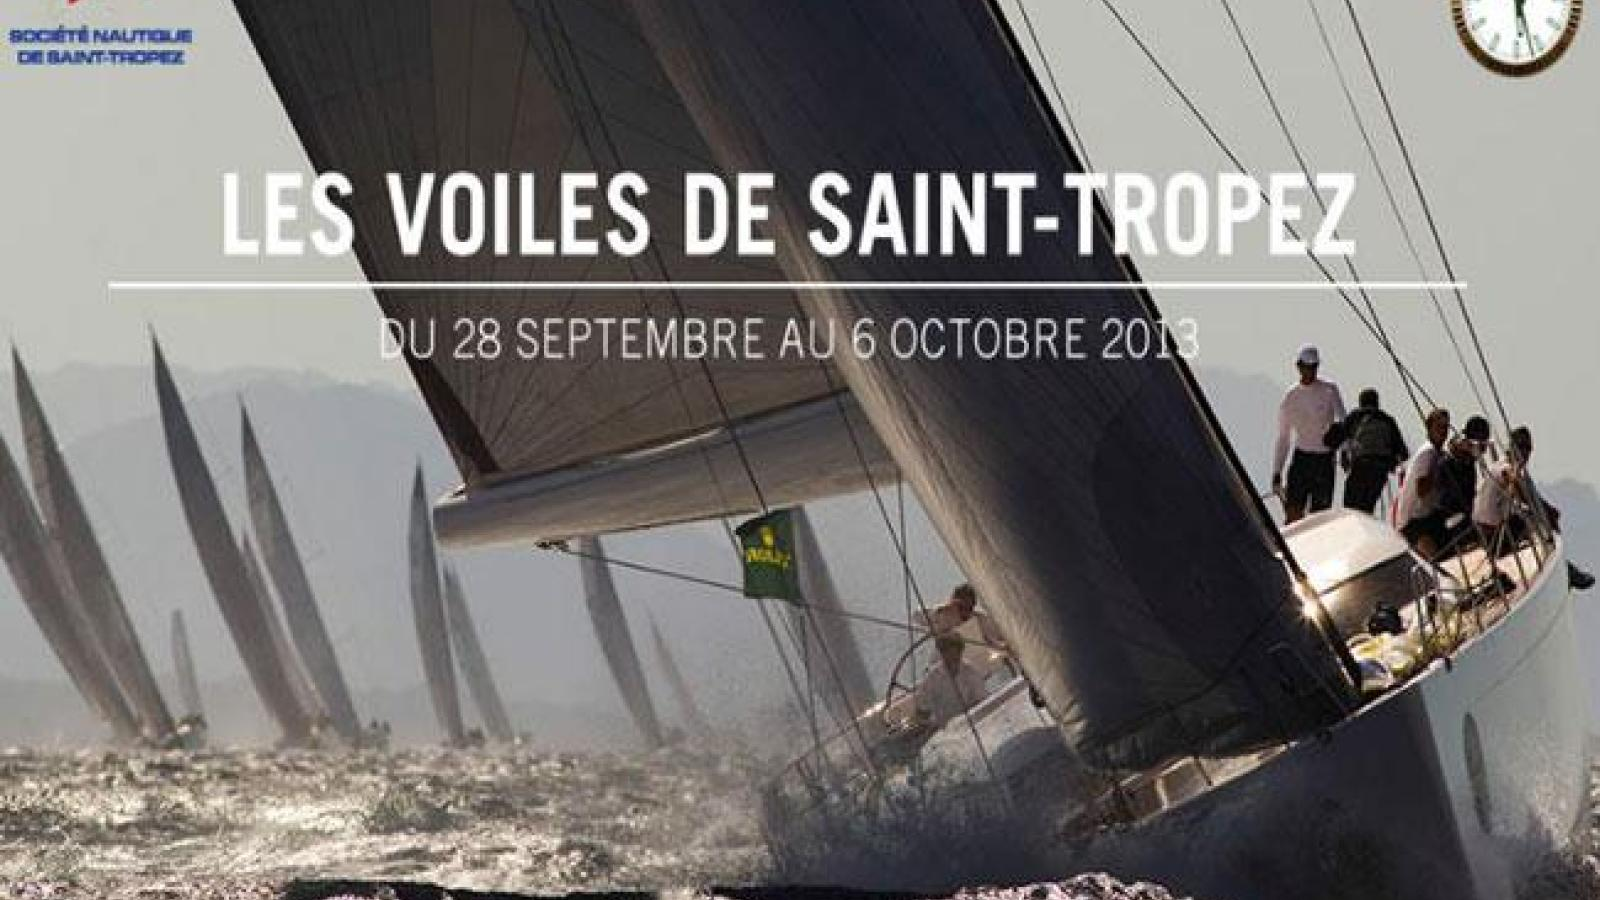 Les Voiles de St-Tropez and the special offer of the Sezz Hotel